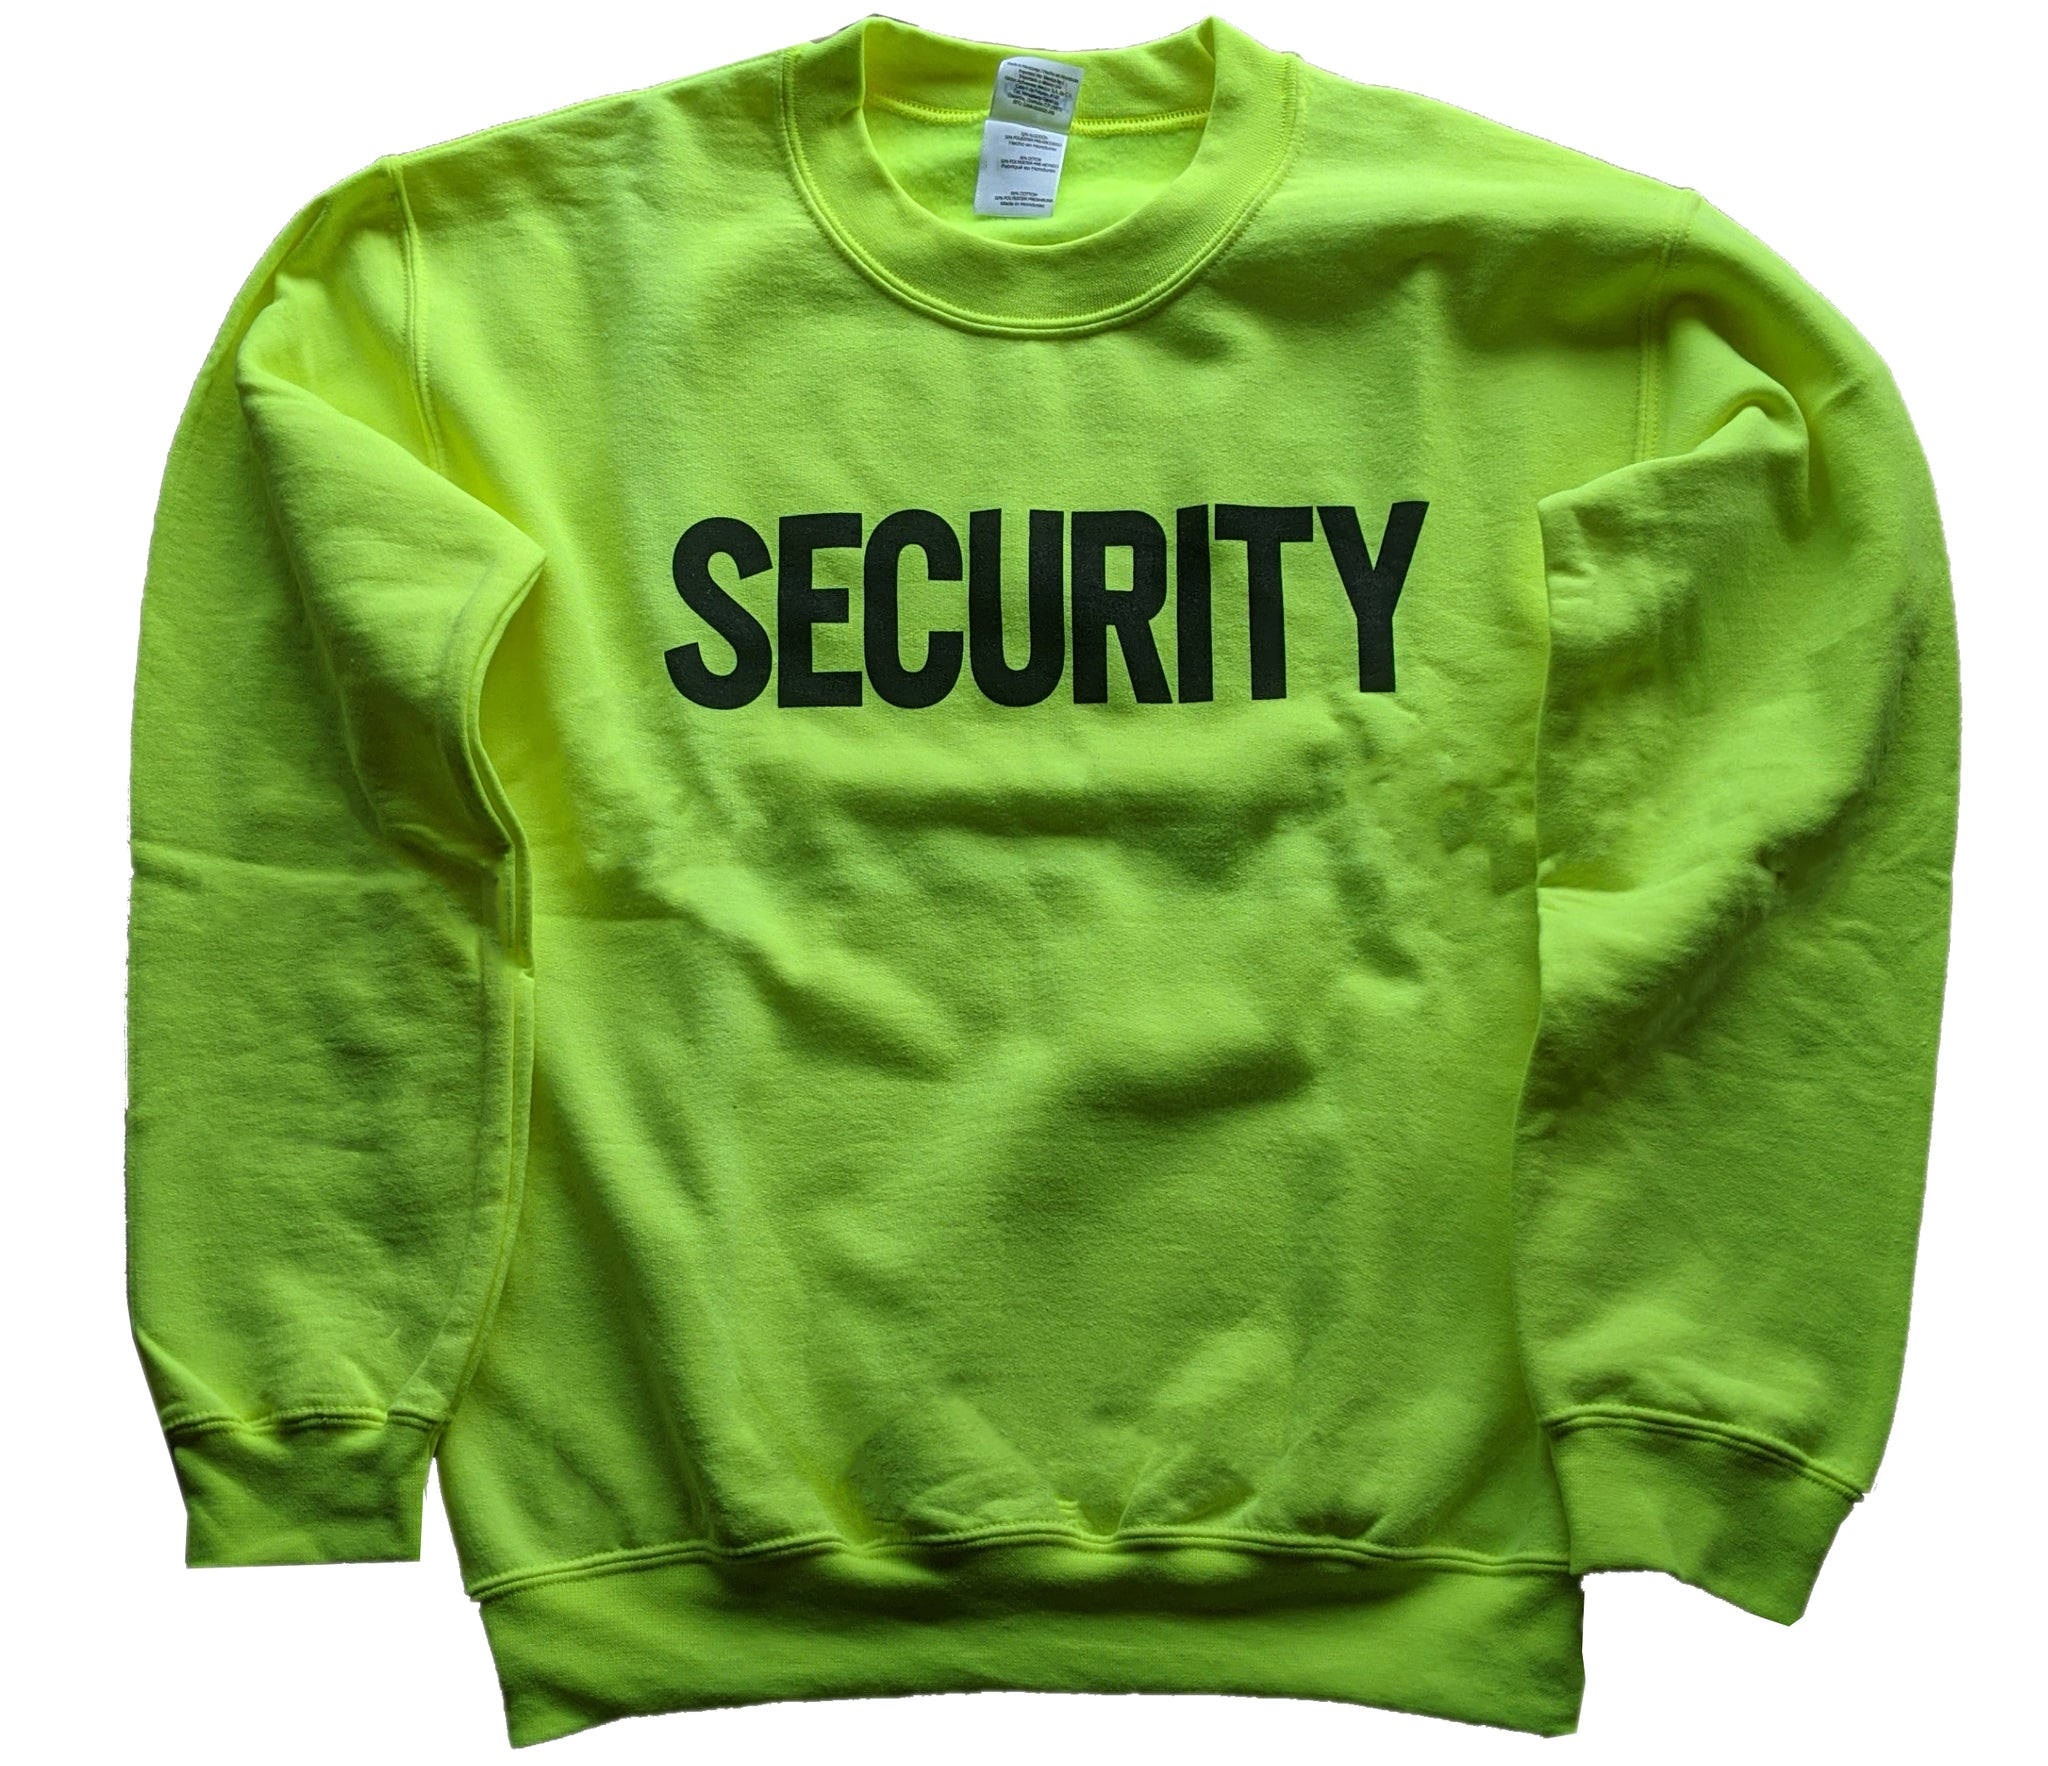 security sweatshirt soft cotton blend - safety green - neon